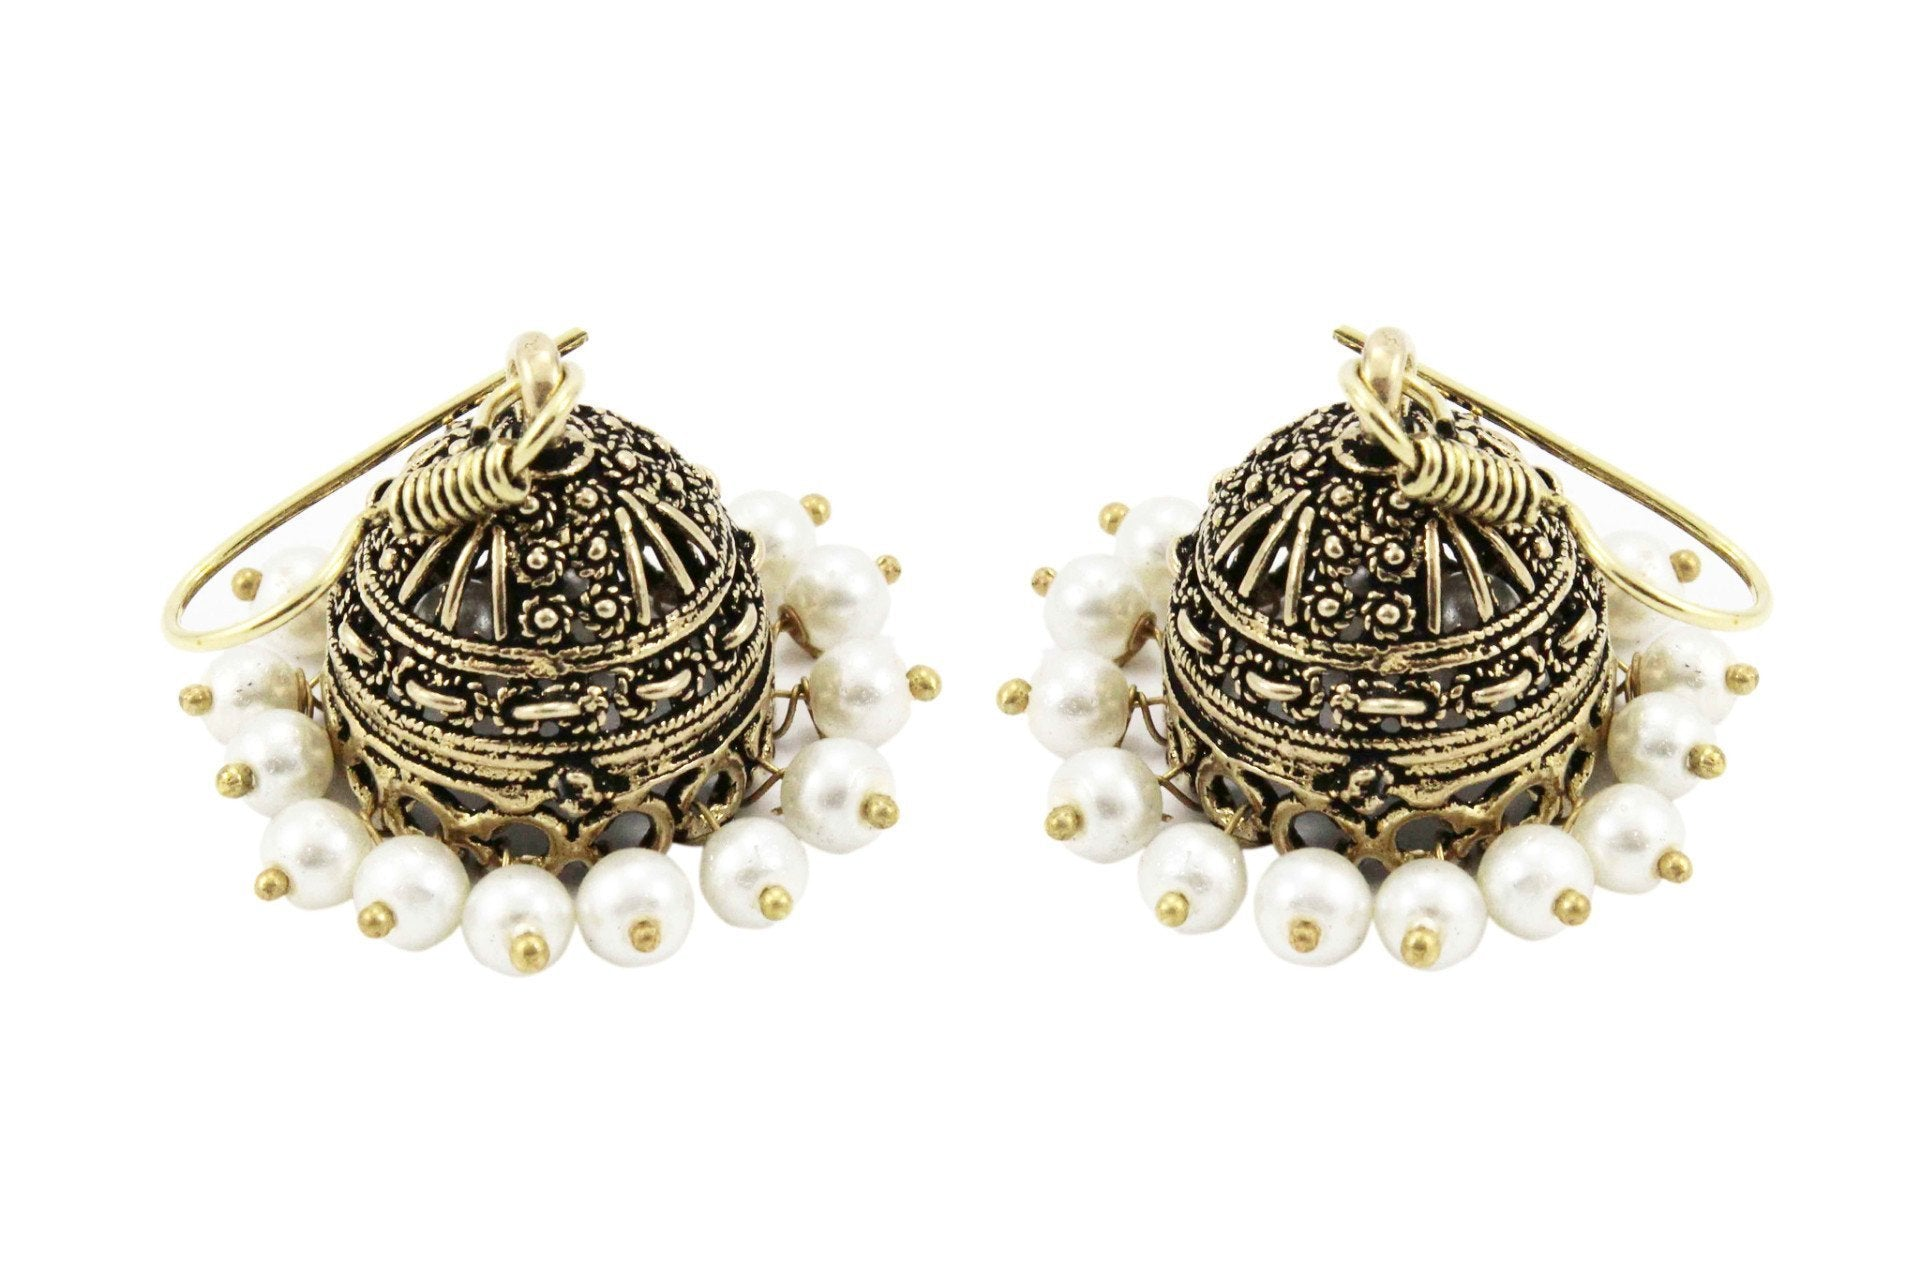 Gold Oxidised Metal Jhumka With White Pearls For Casual Wear